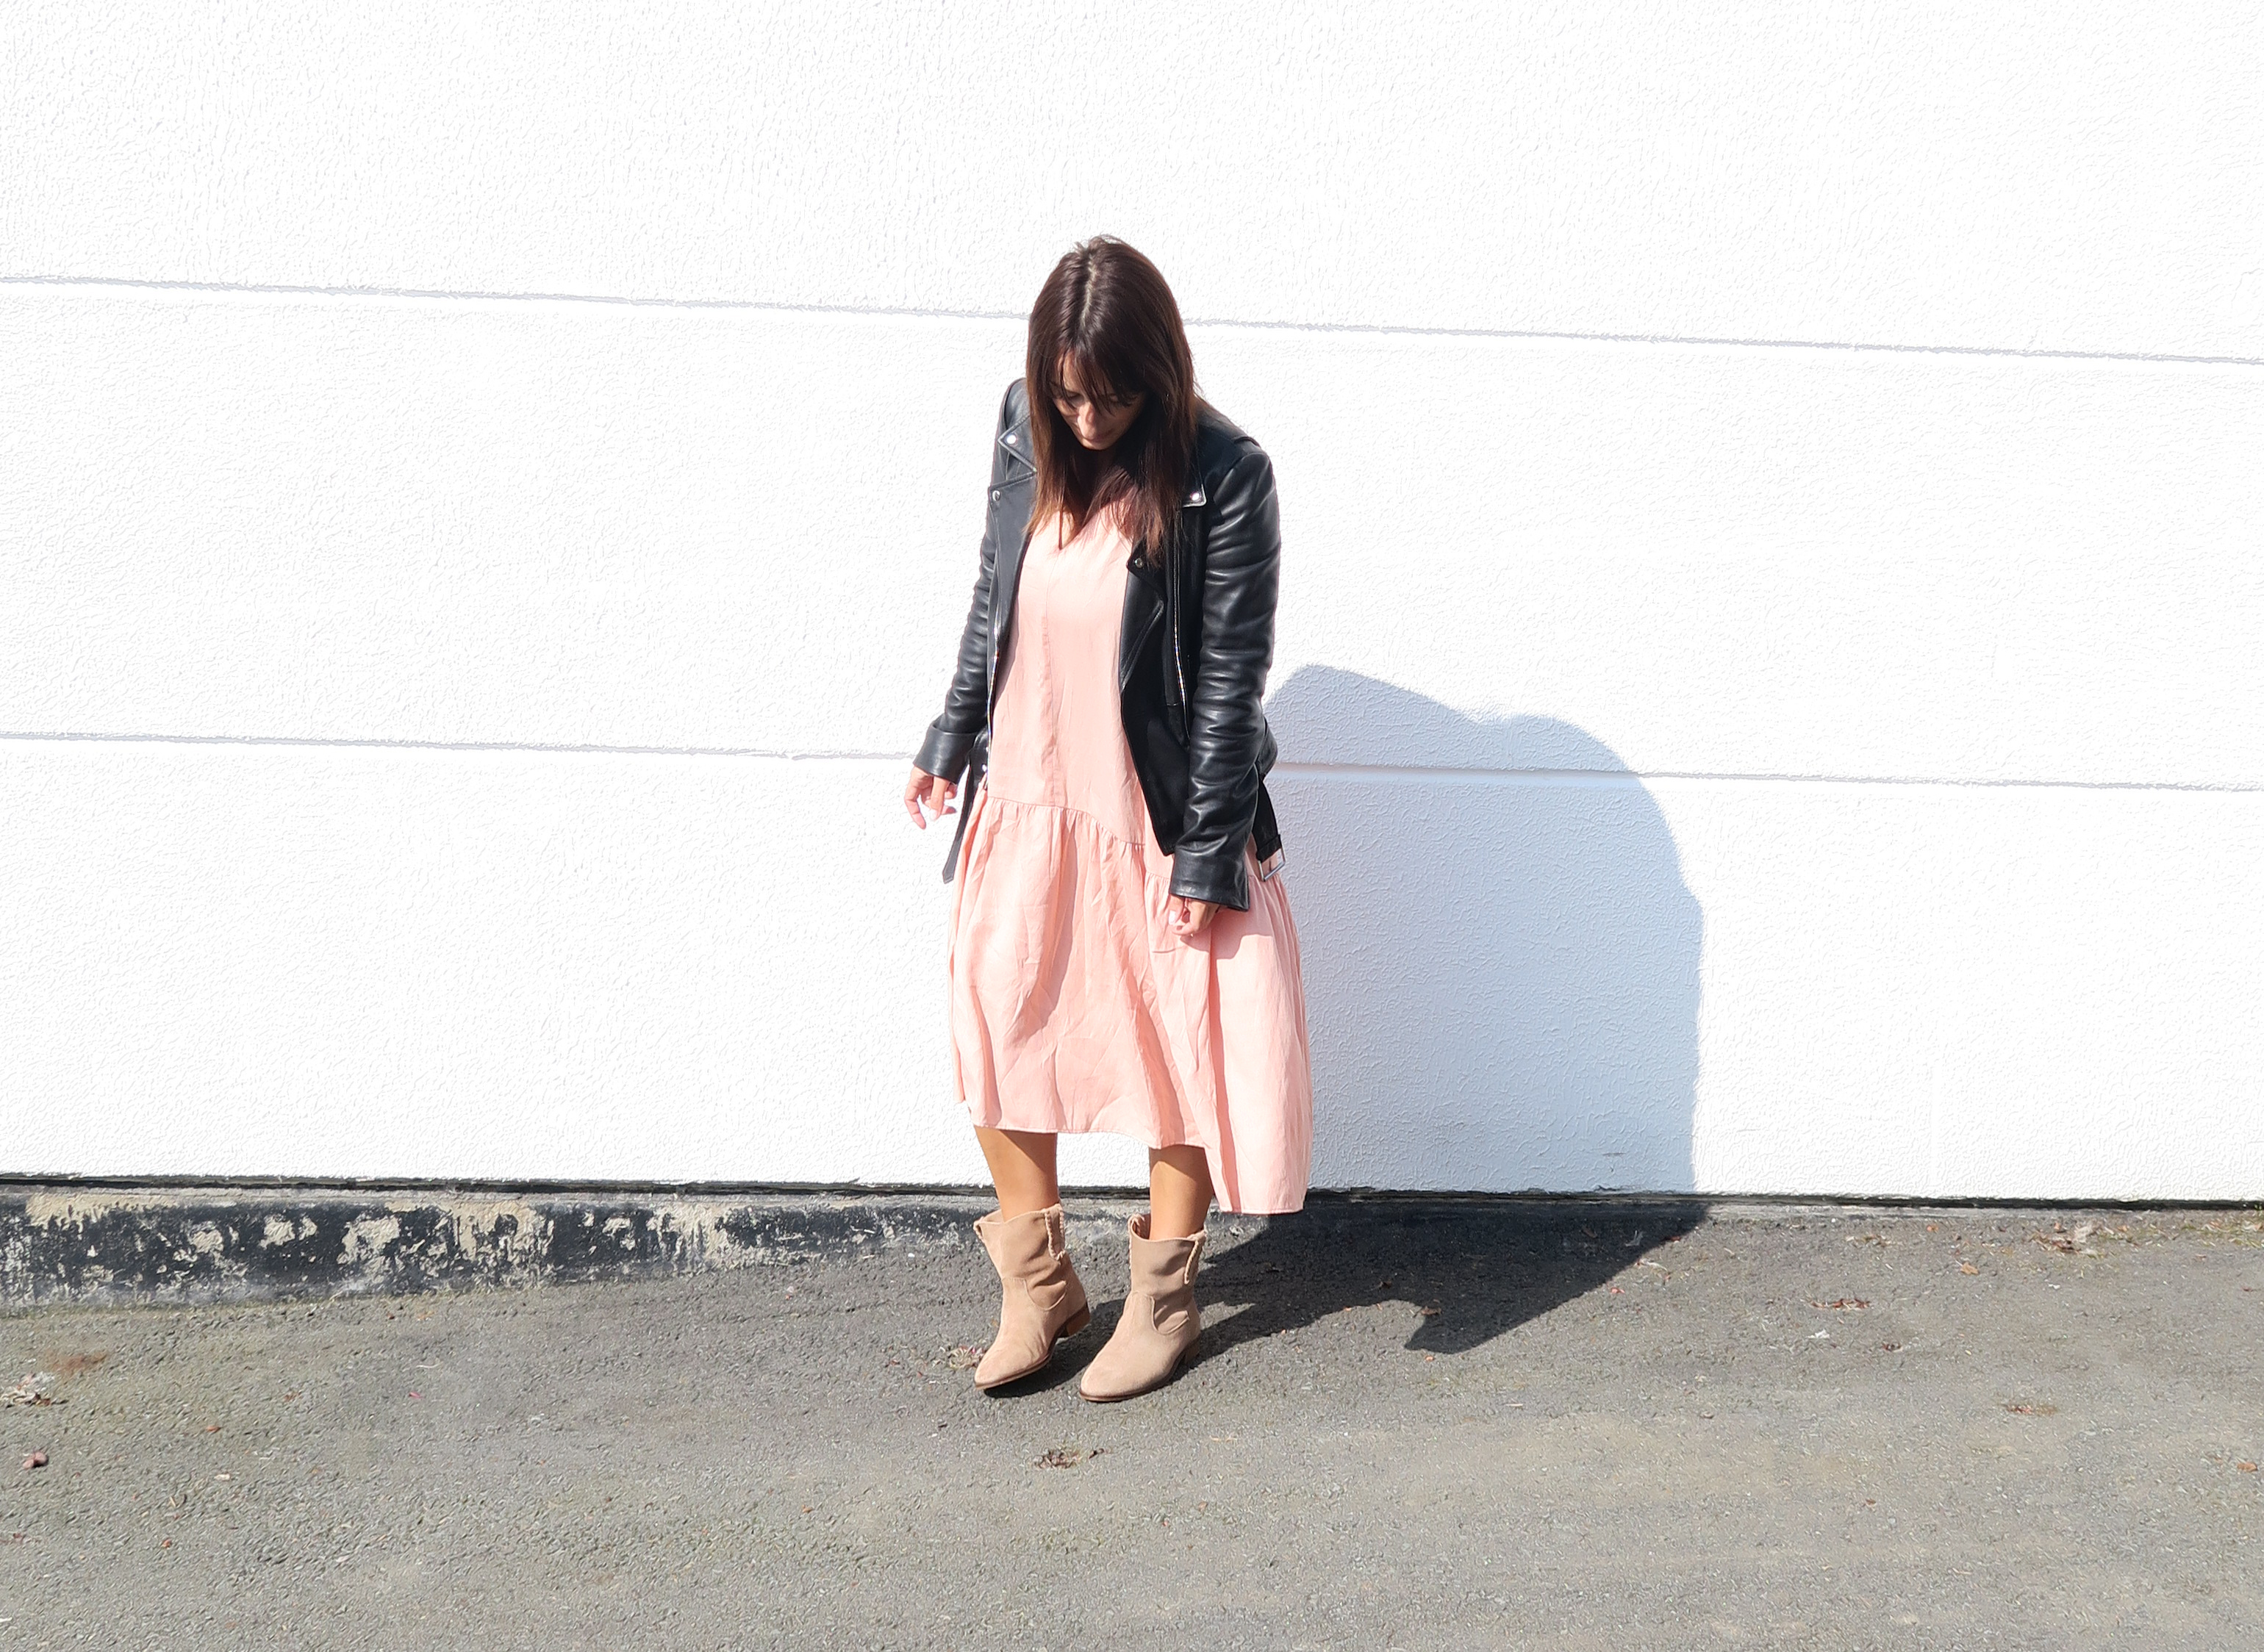 Modesalat-blogger-streetstyle-leather-bloggerstyle-ruffles-dress-7